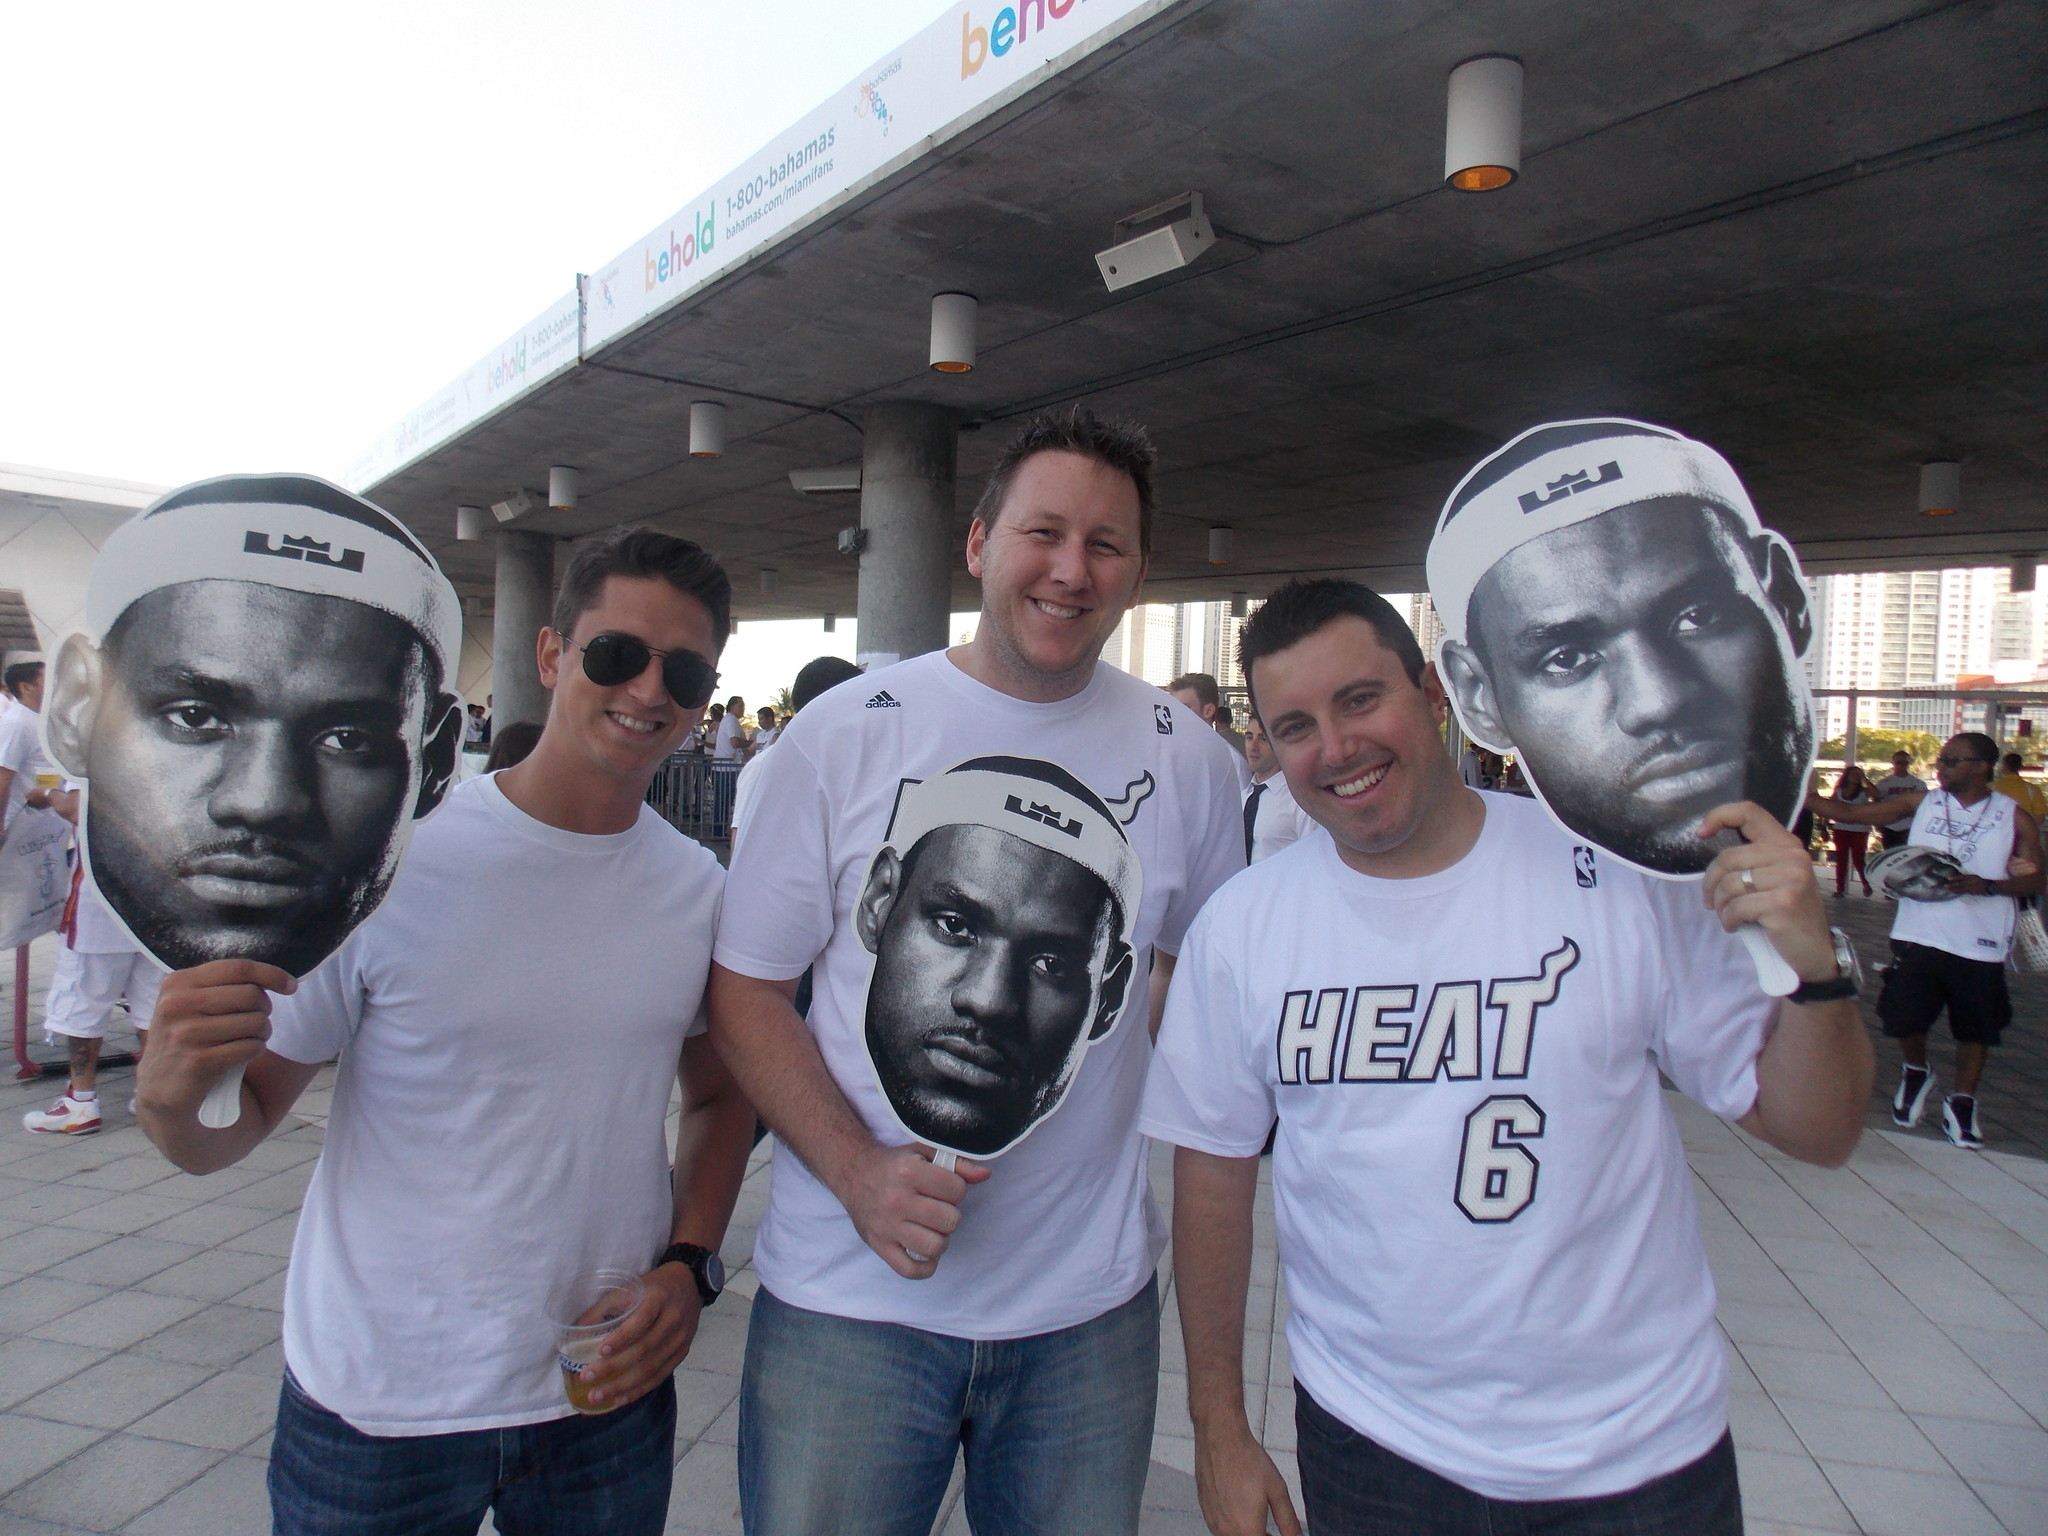 White Hot Heat fans - White Hot fans